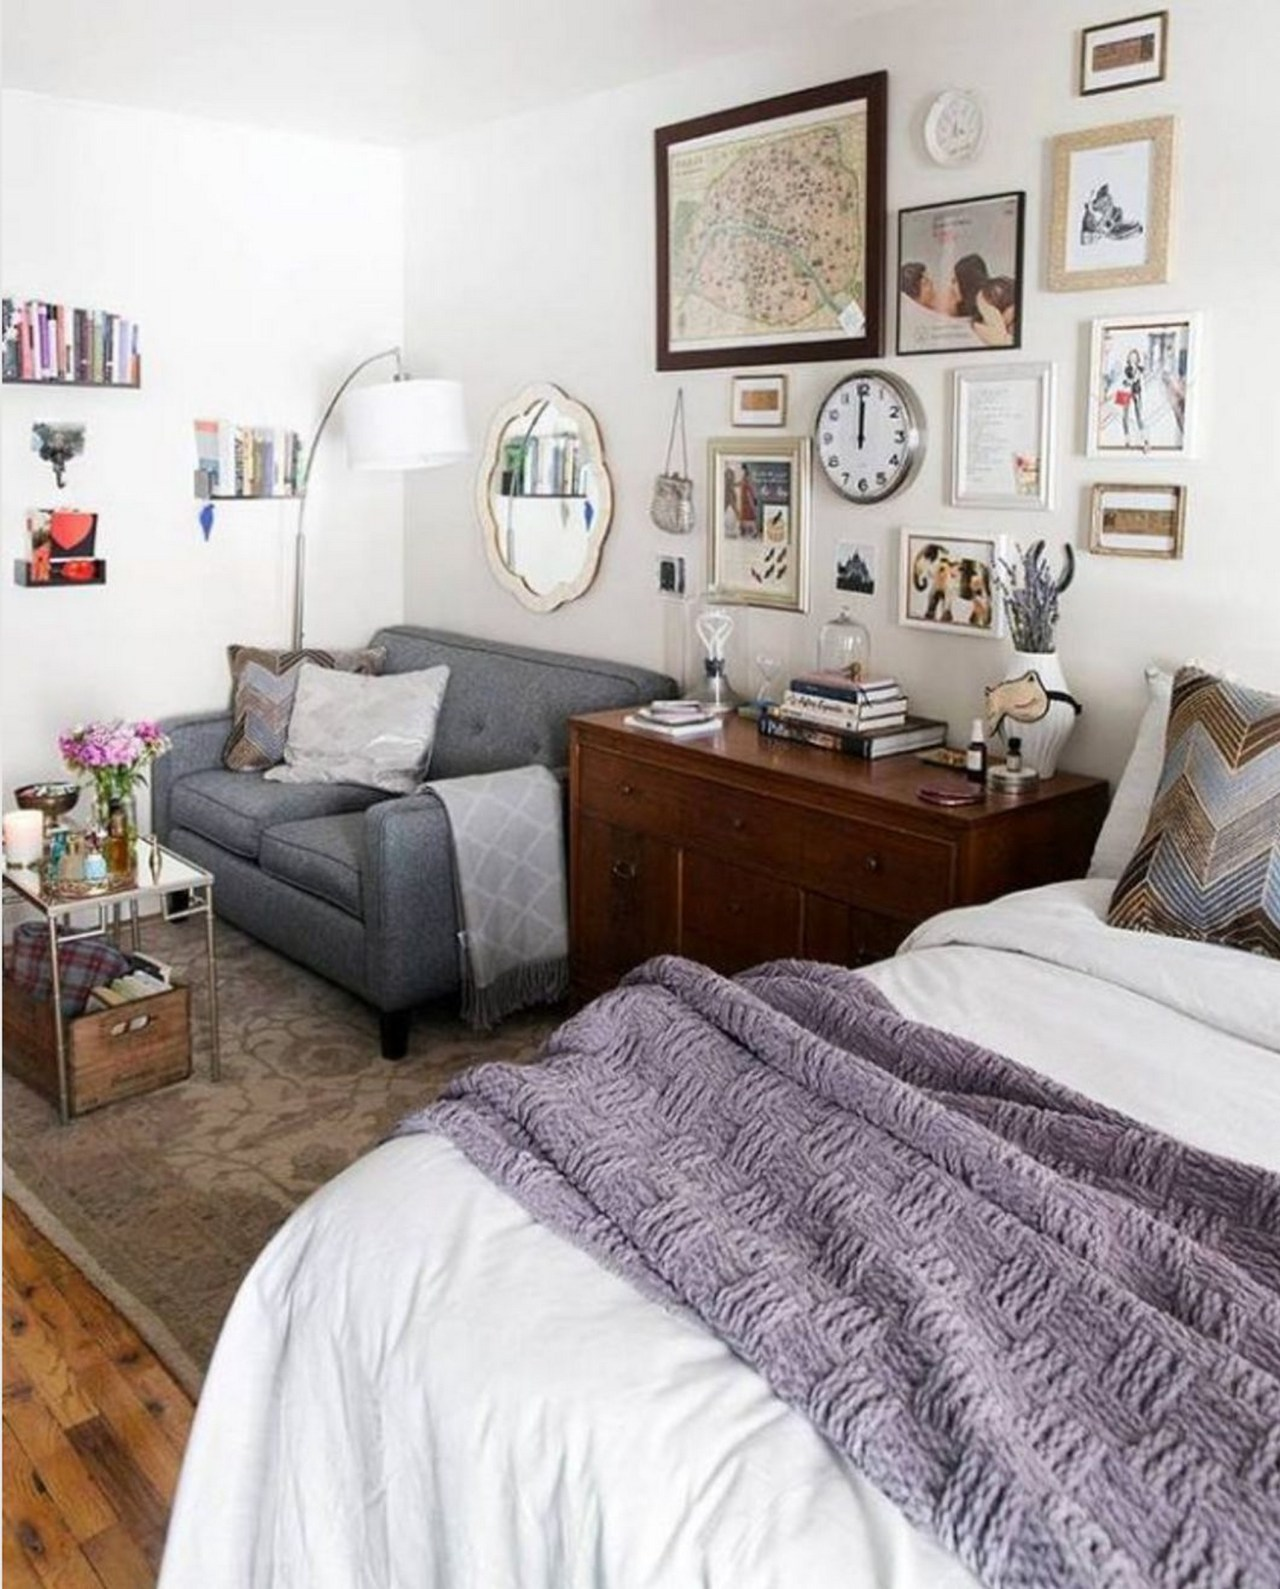 20 Perfect Small Apartment Decorating On A Budget